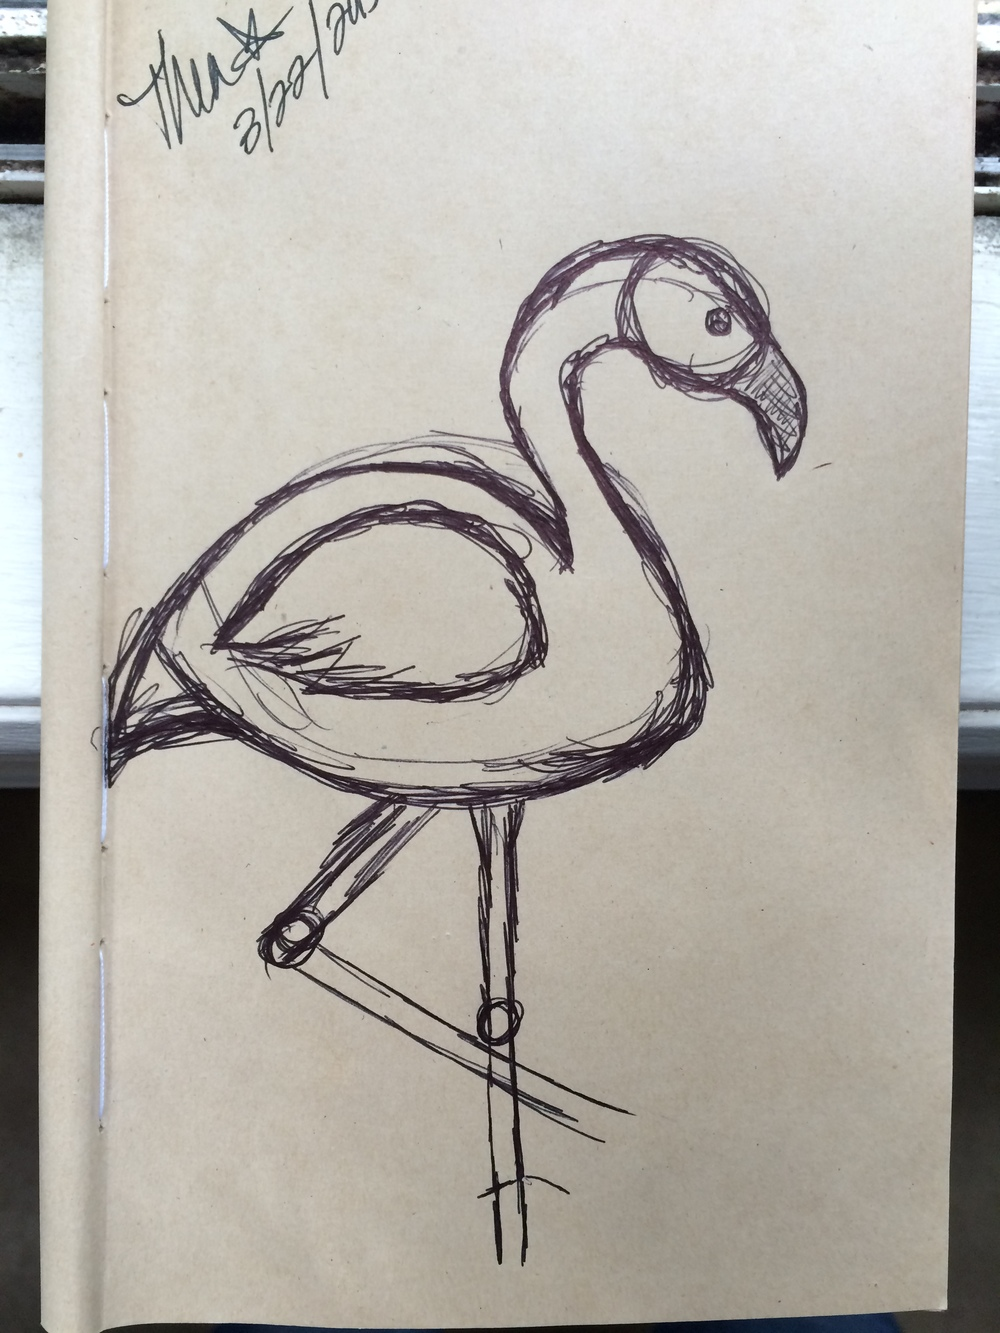 Thea's original flamingo sketch.